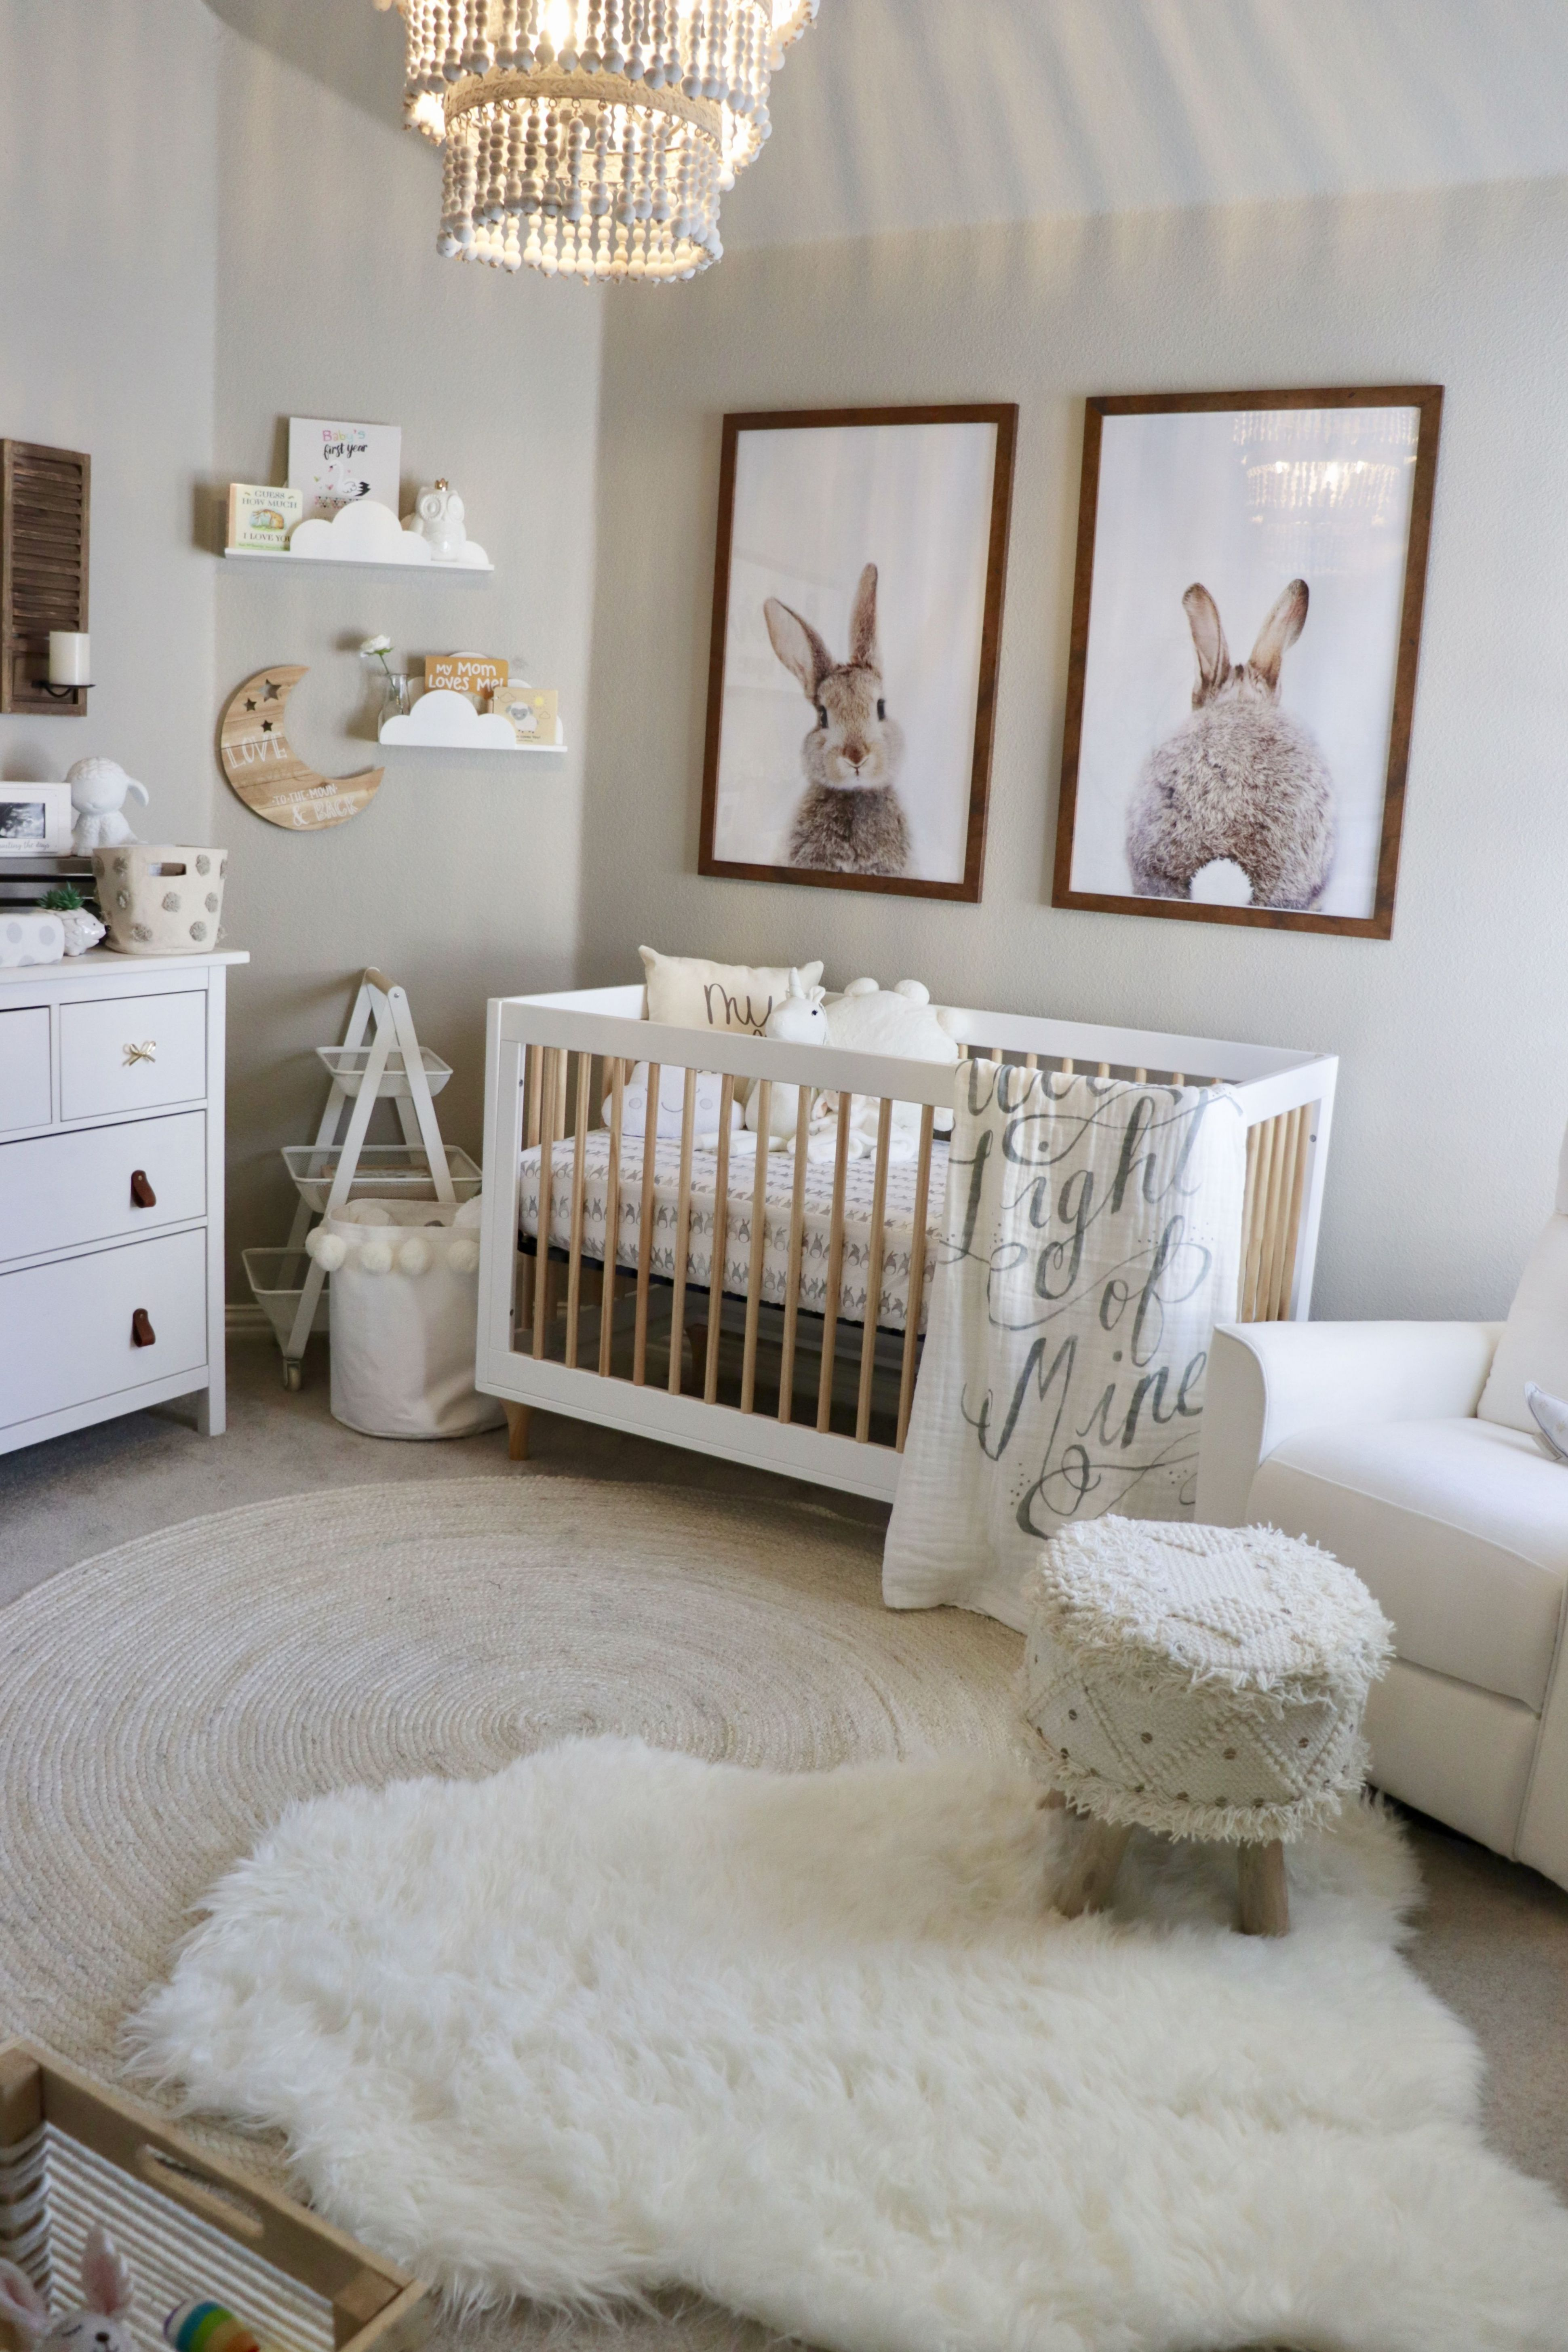 Classic Baby Girl Nursery | Girl room, Baby room decor, Nursery room